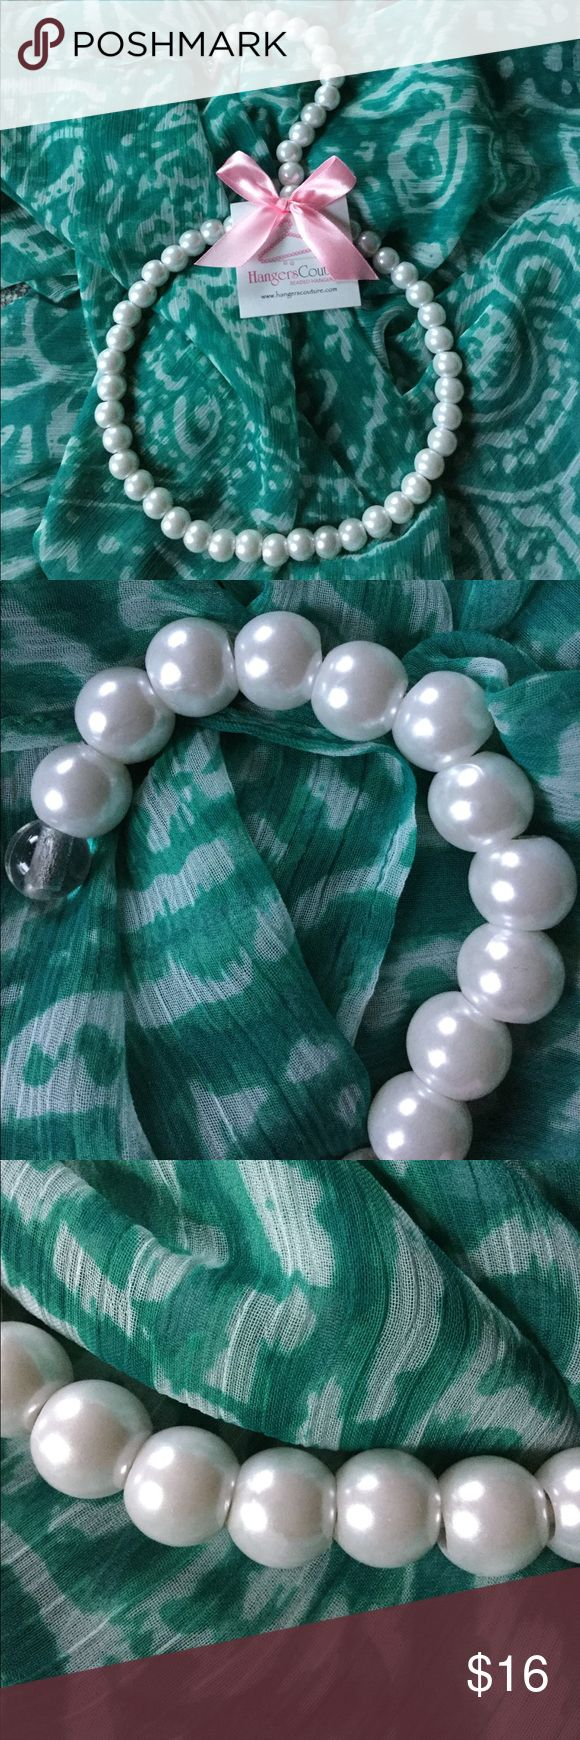 Fun Pearl hanging scarf holder Hang scarves, necklaces or other items from this fashion forward faux pearl holder. Great gift for Bridal Showers, Graduation, Sweet 16, Bat Mitzvahs, Communions, Birthdays ! Accessories